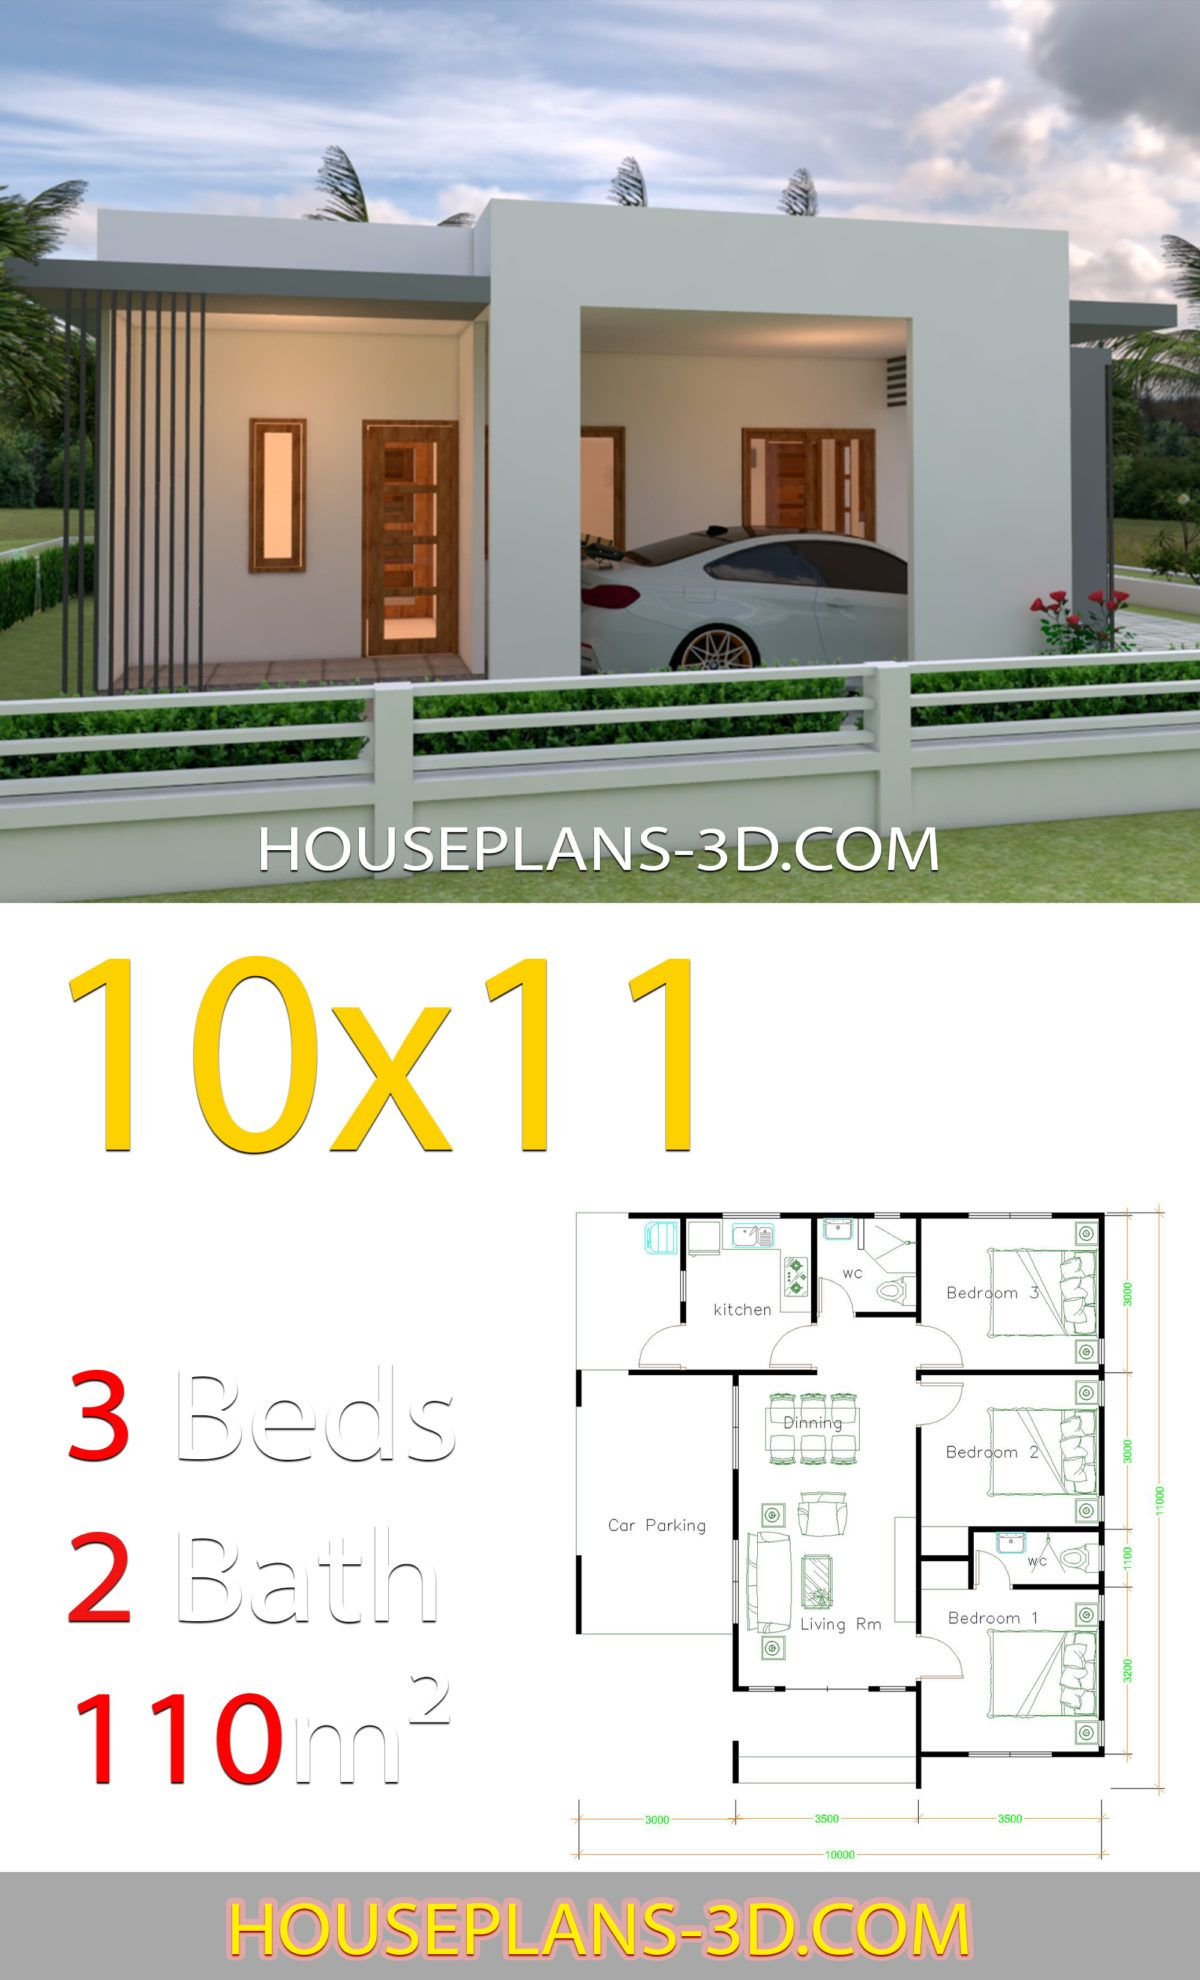 House Design 10x11 With 3 Bedrooms Terrace Roof House Plans 3d House Roof House Plans Small House Design Plans